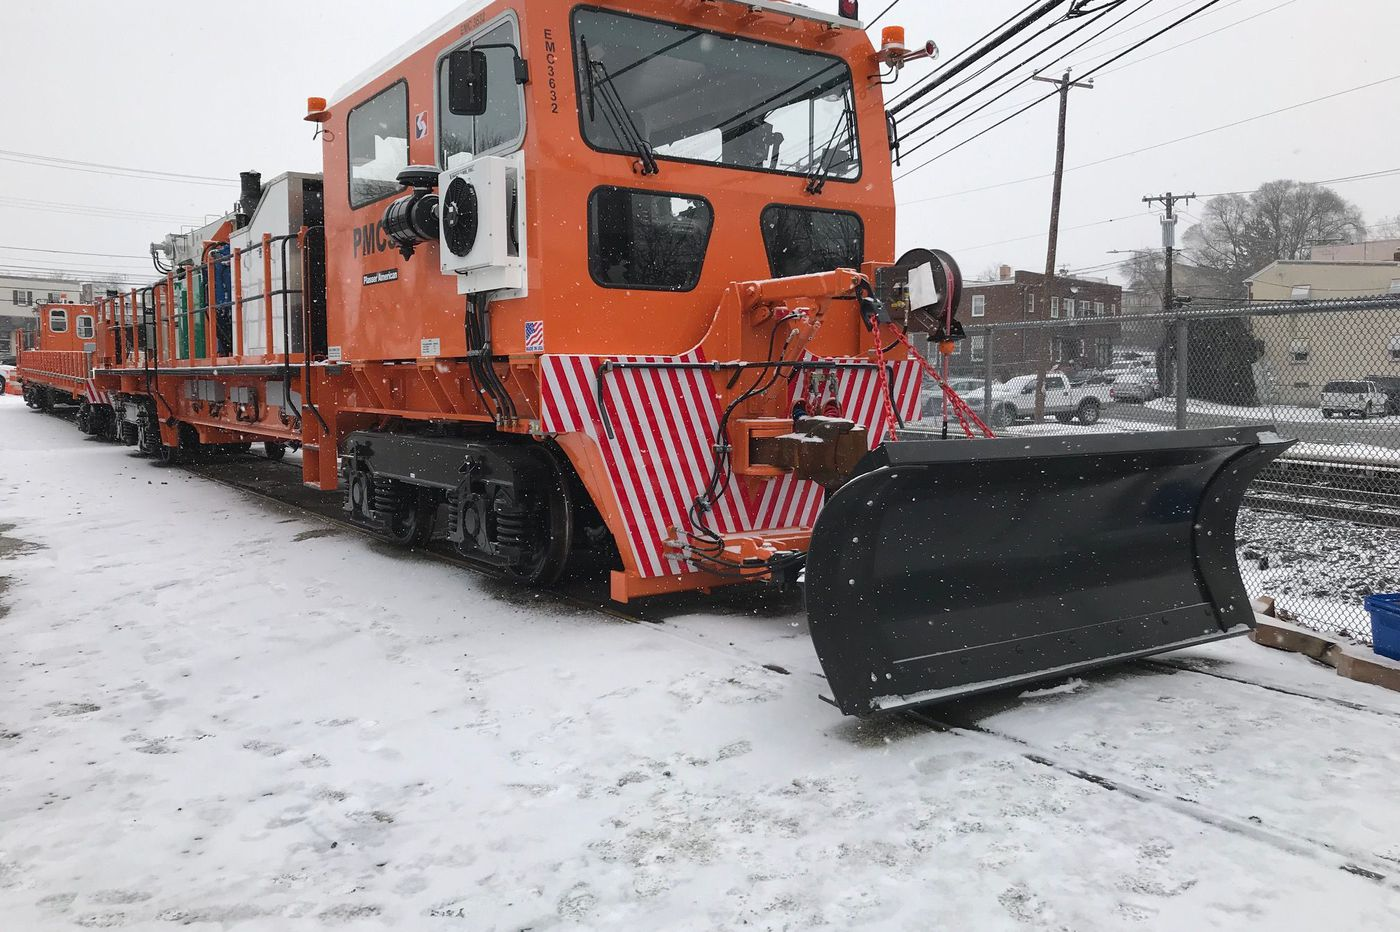 SEPTA unveils plow for snow-susceptible Norristown High Speed Line